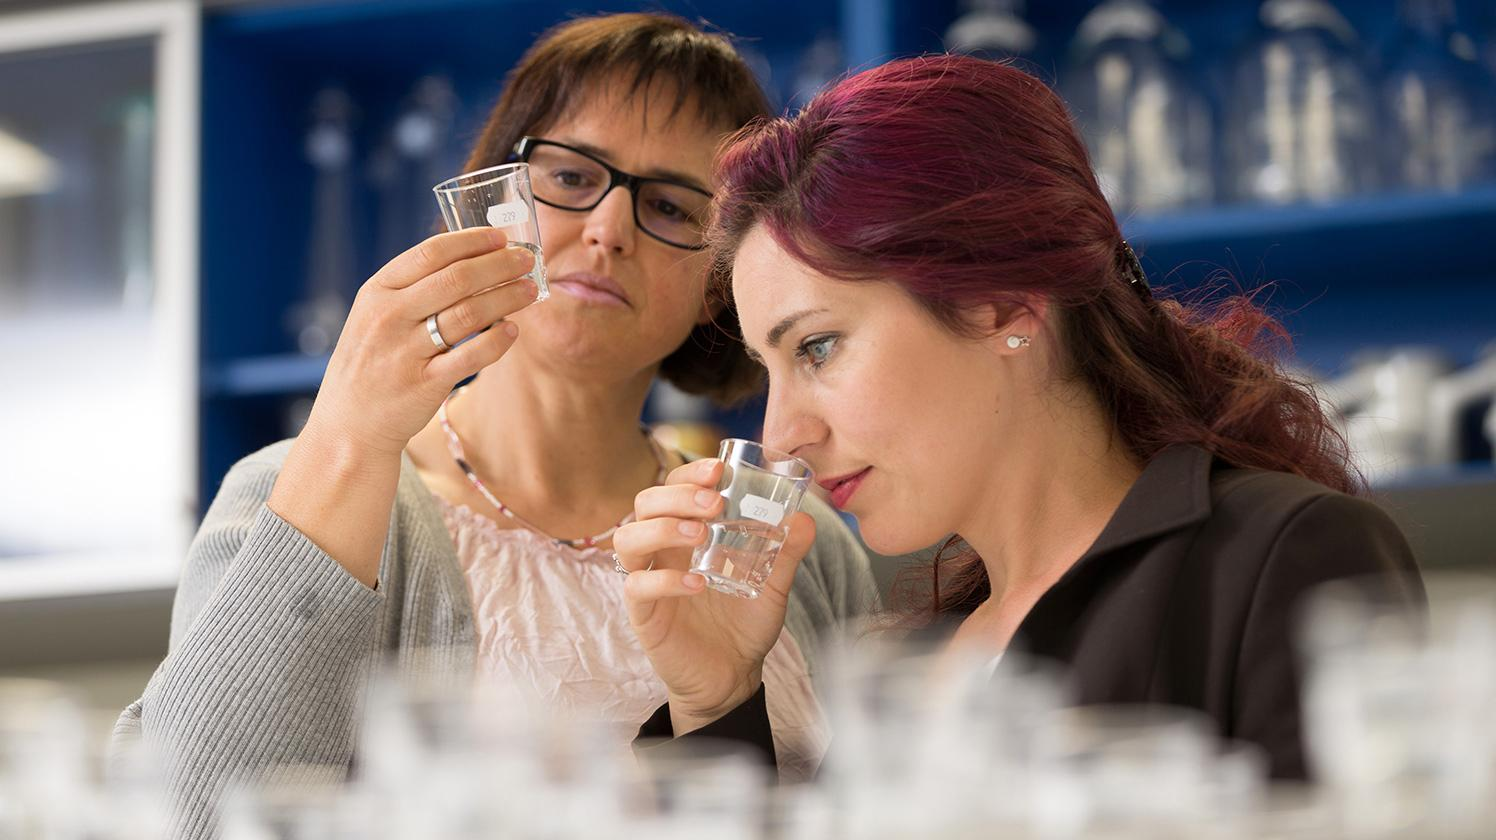 BRITA sensory lab team test